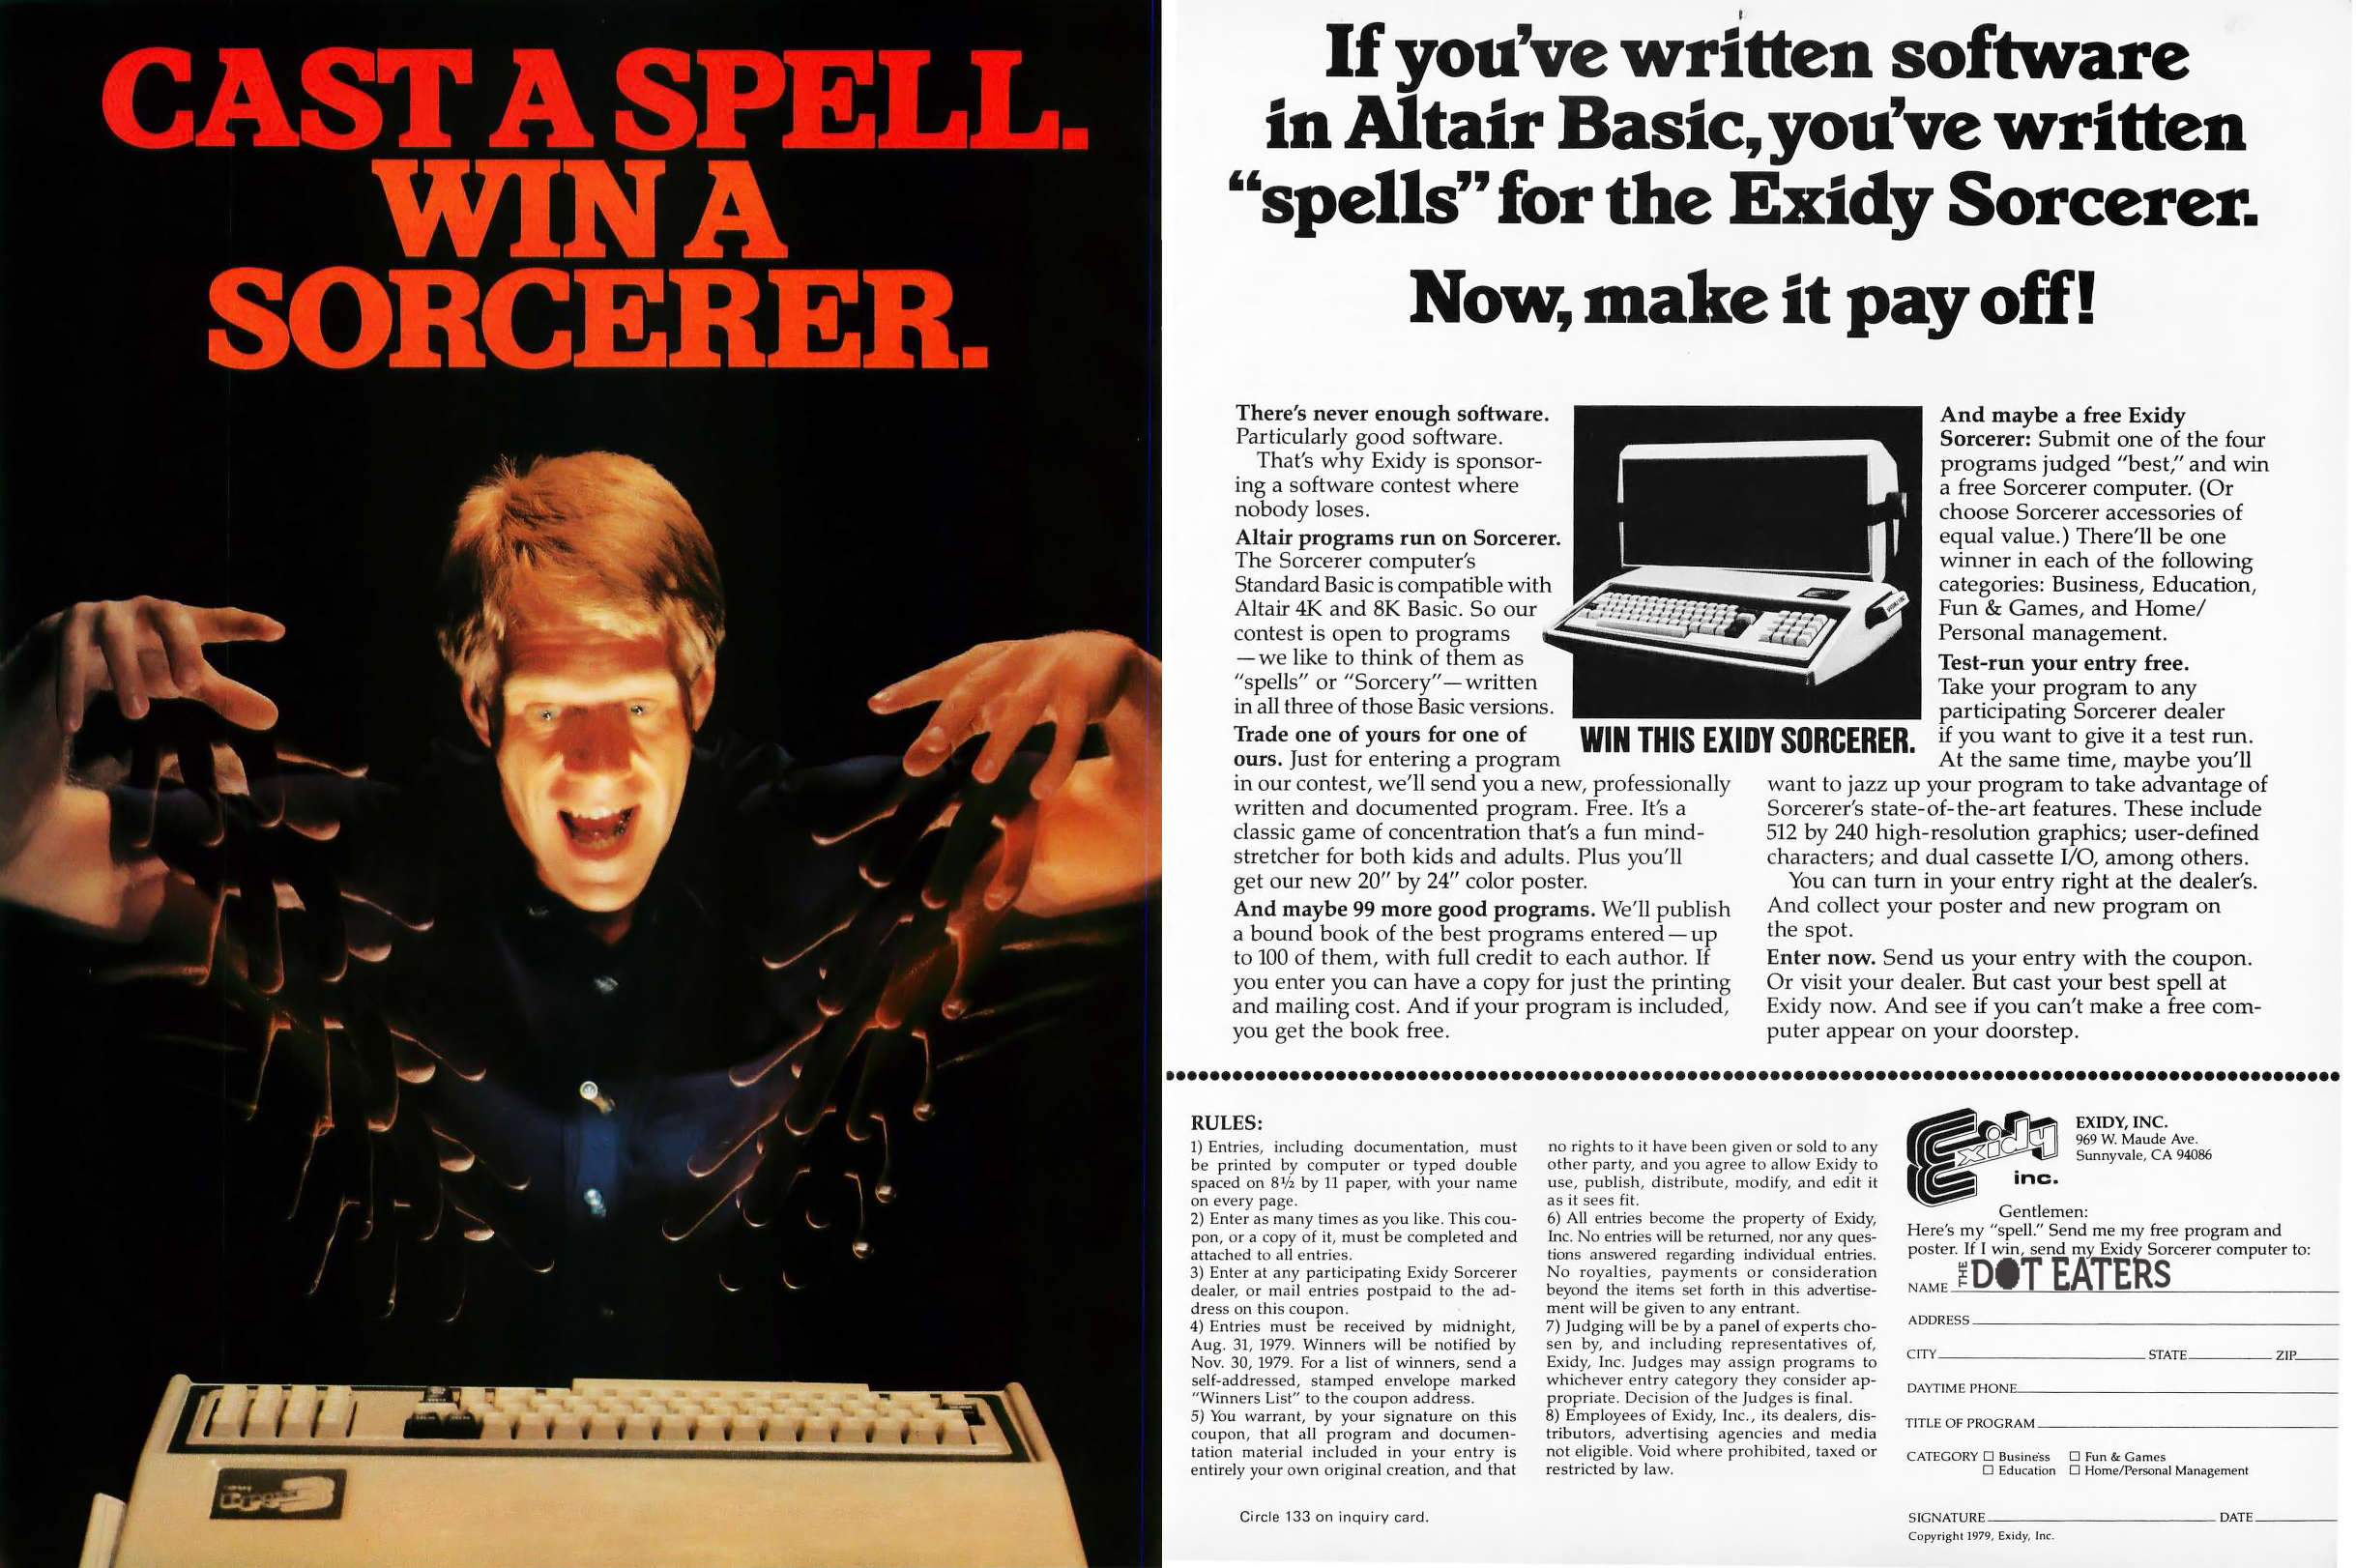 1979 ad for a contest involving the Exidy Sorcerer, an early personal computer by arcade video game maker Exidy